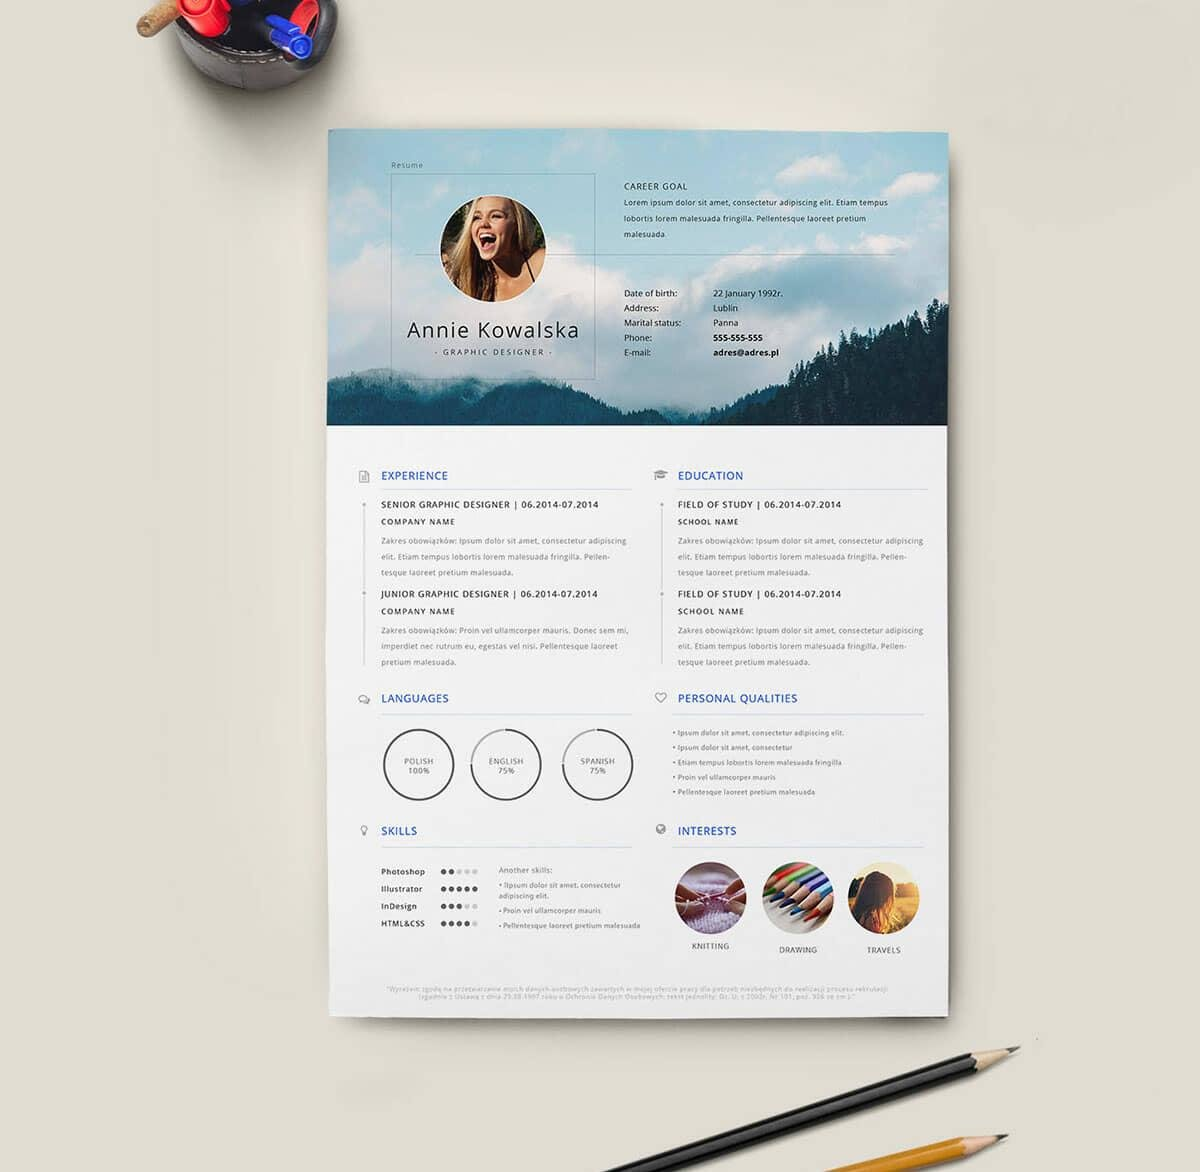 Free Resume Templates Downloads | Free Resume Templates 18 Downloadable Resume Templates To Use